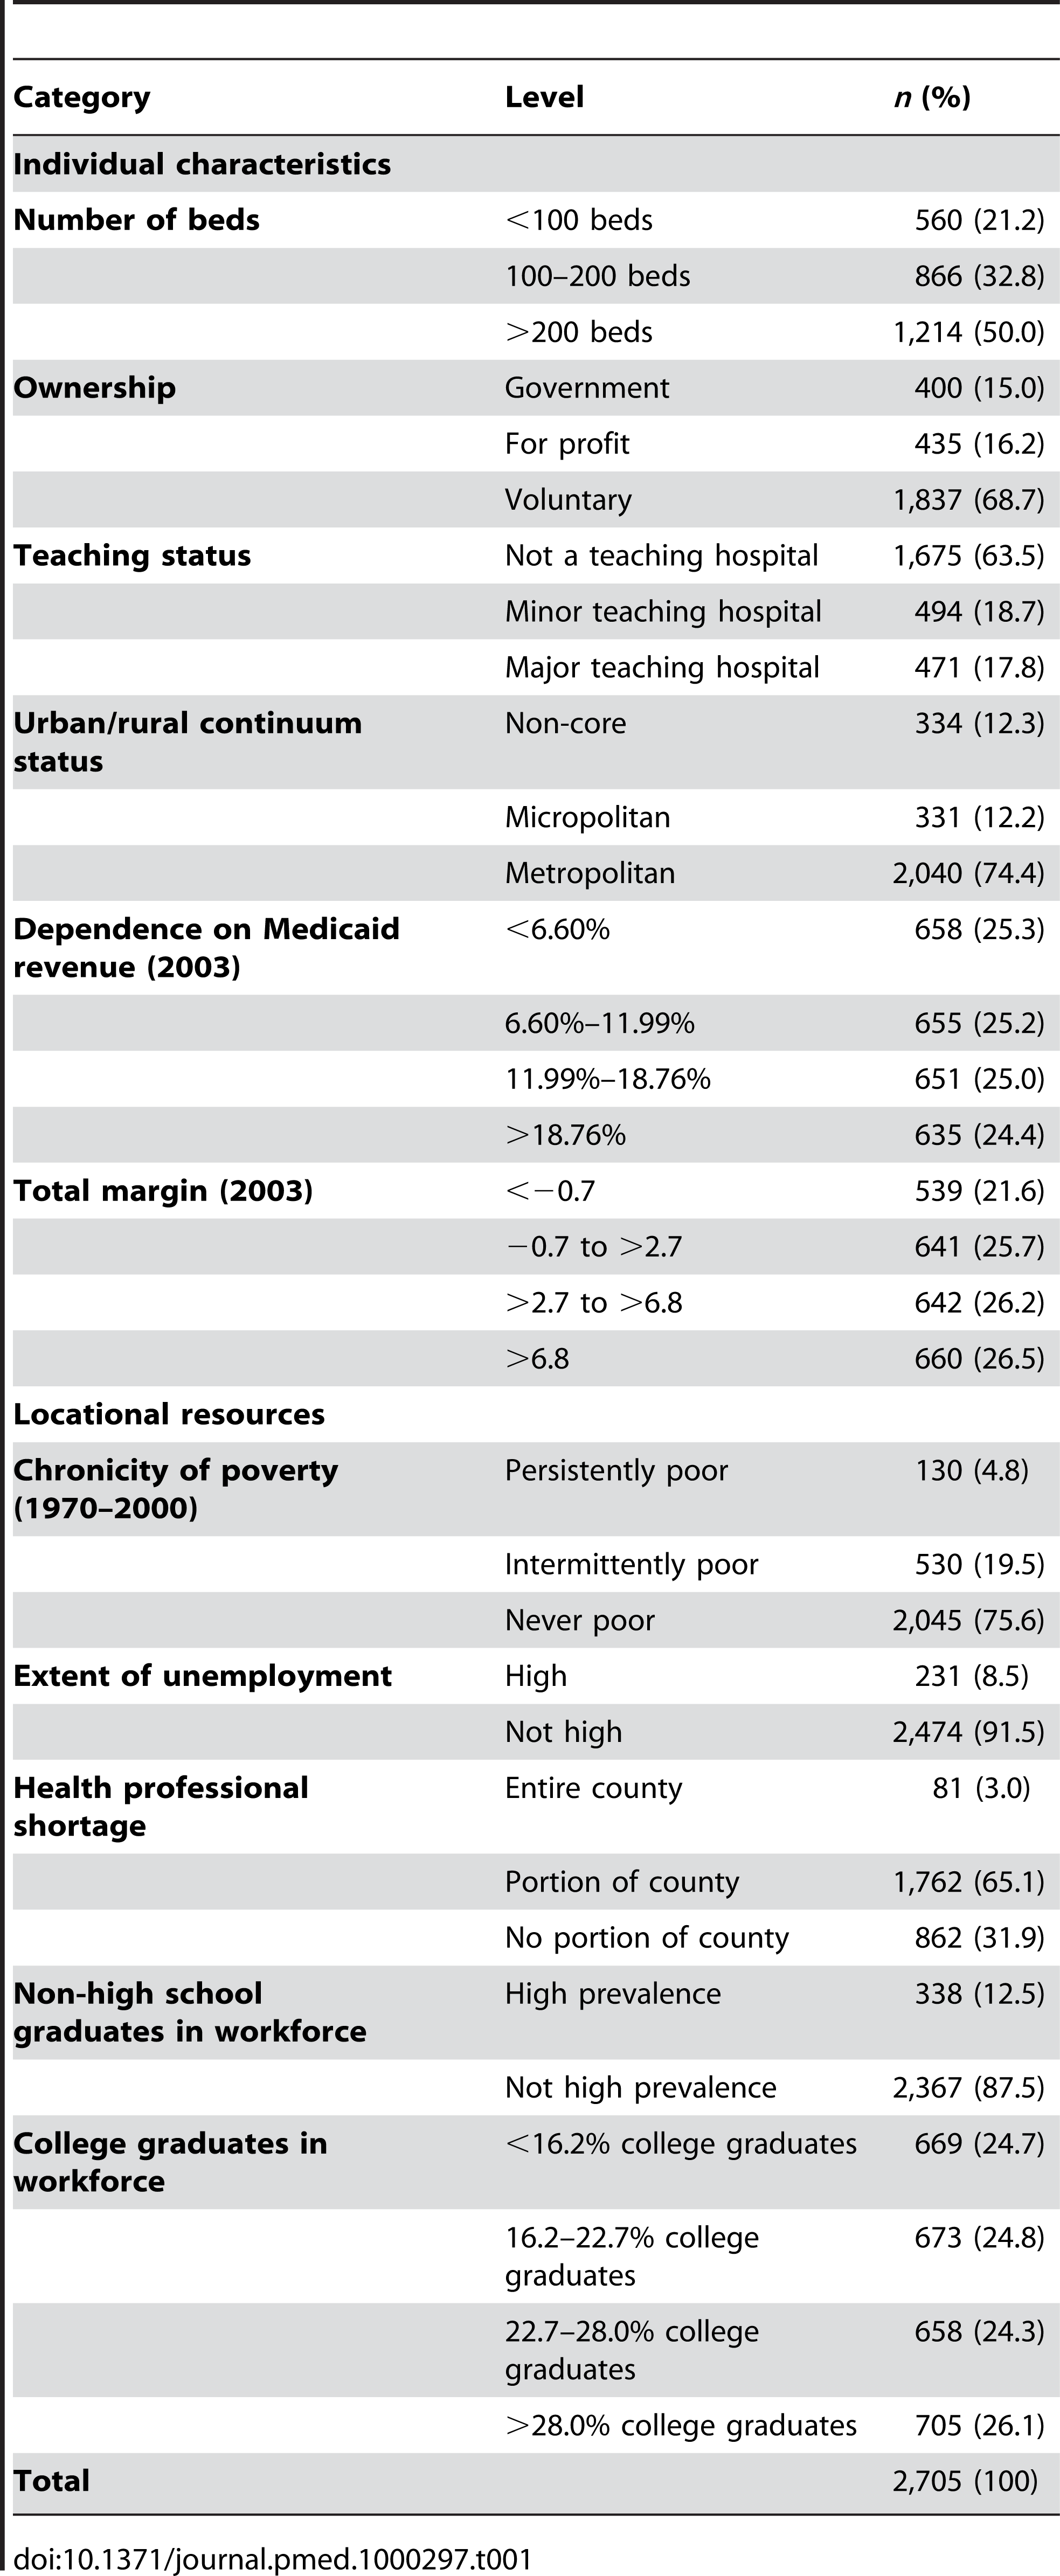 US hospitals reporting on all seven HQA measures from 2004 through 2007, according to individual characteristics and locational resource levels.